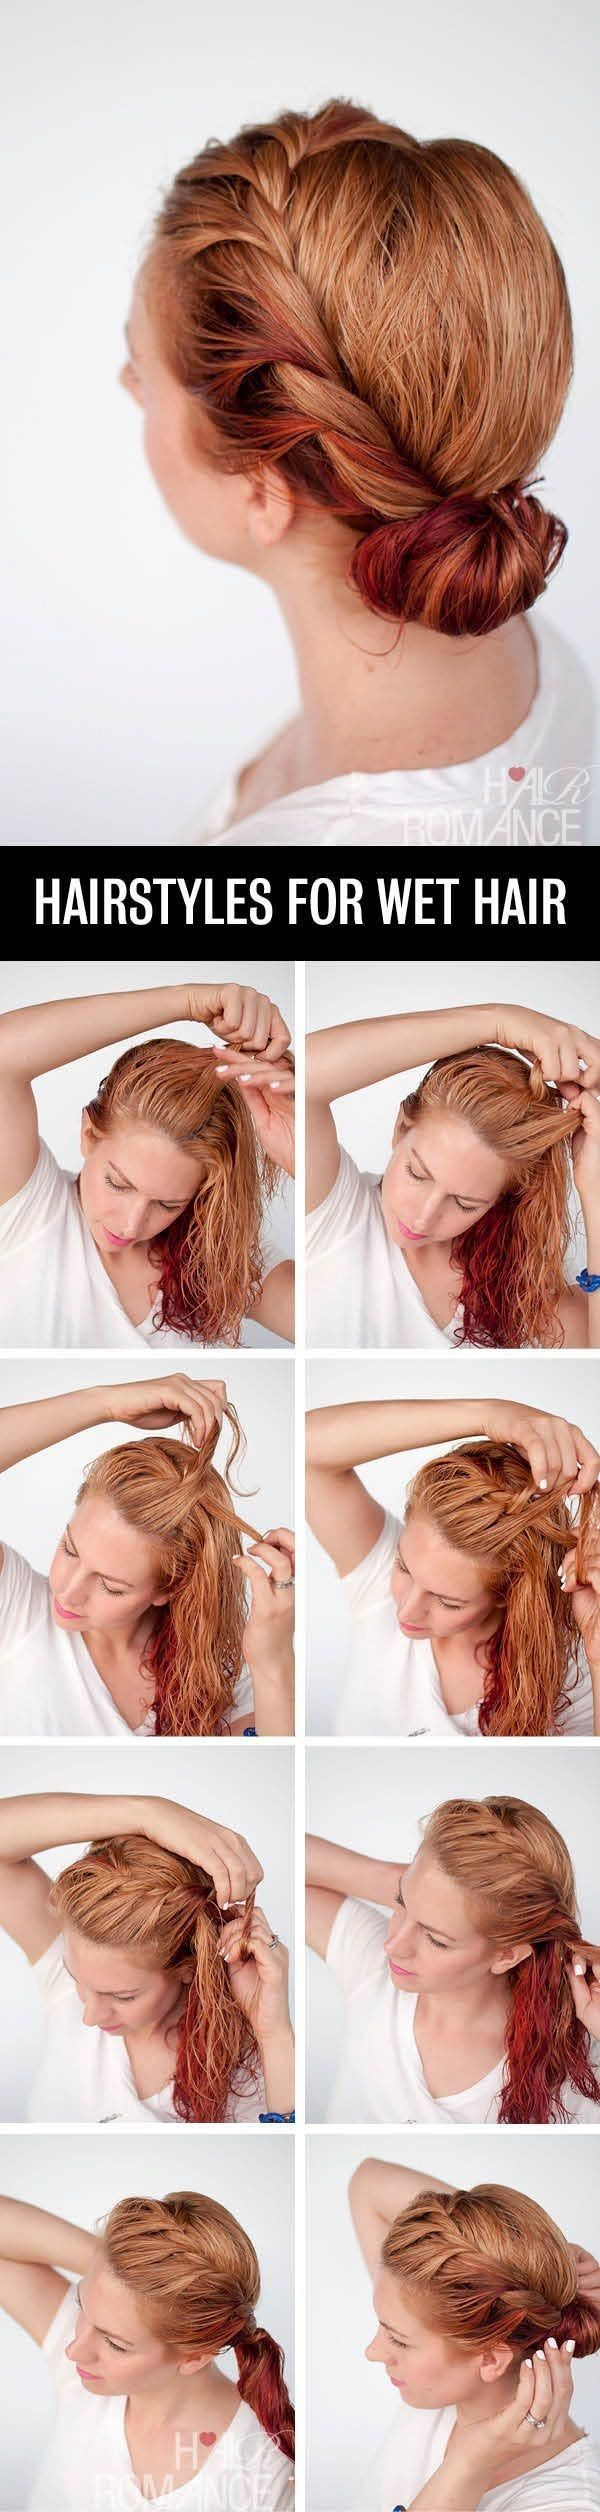 Quick Hairstyle Tutorials For Women in a rush #hair #hairstyles | www.hairsea.com/...